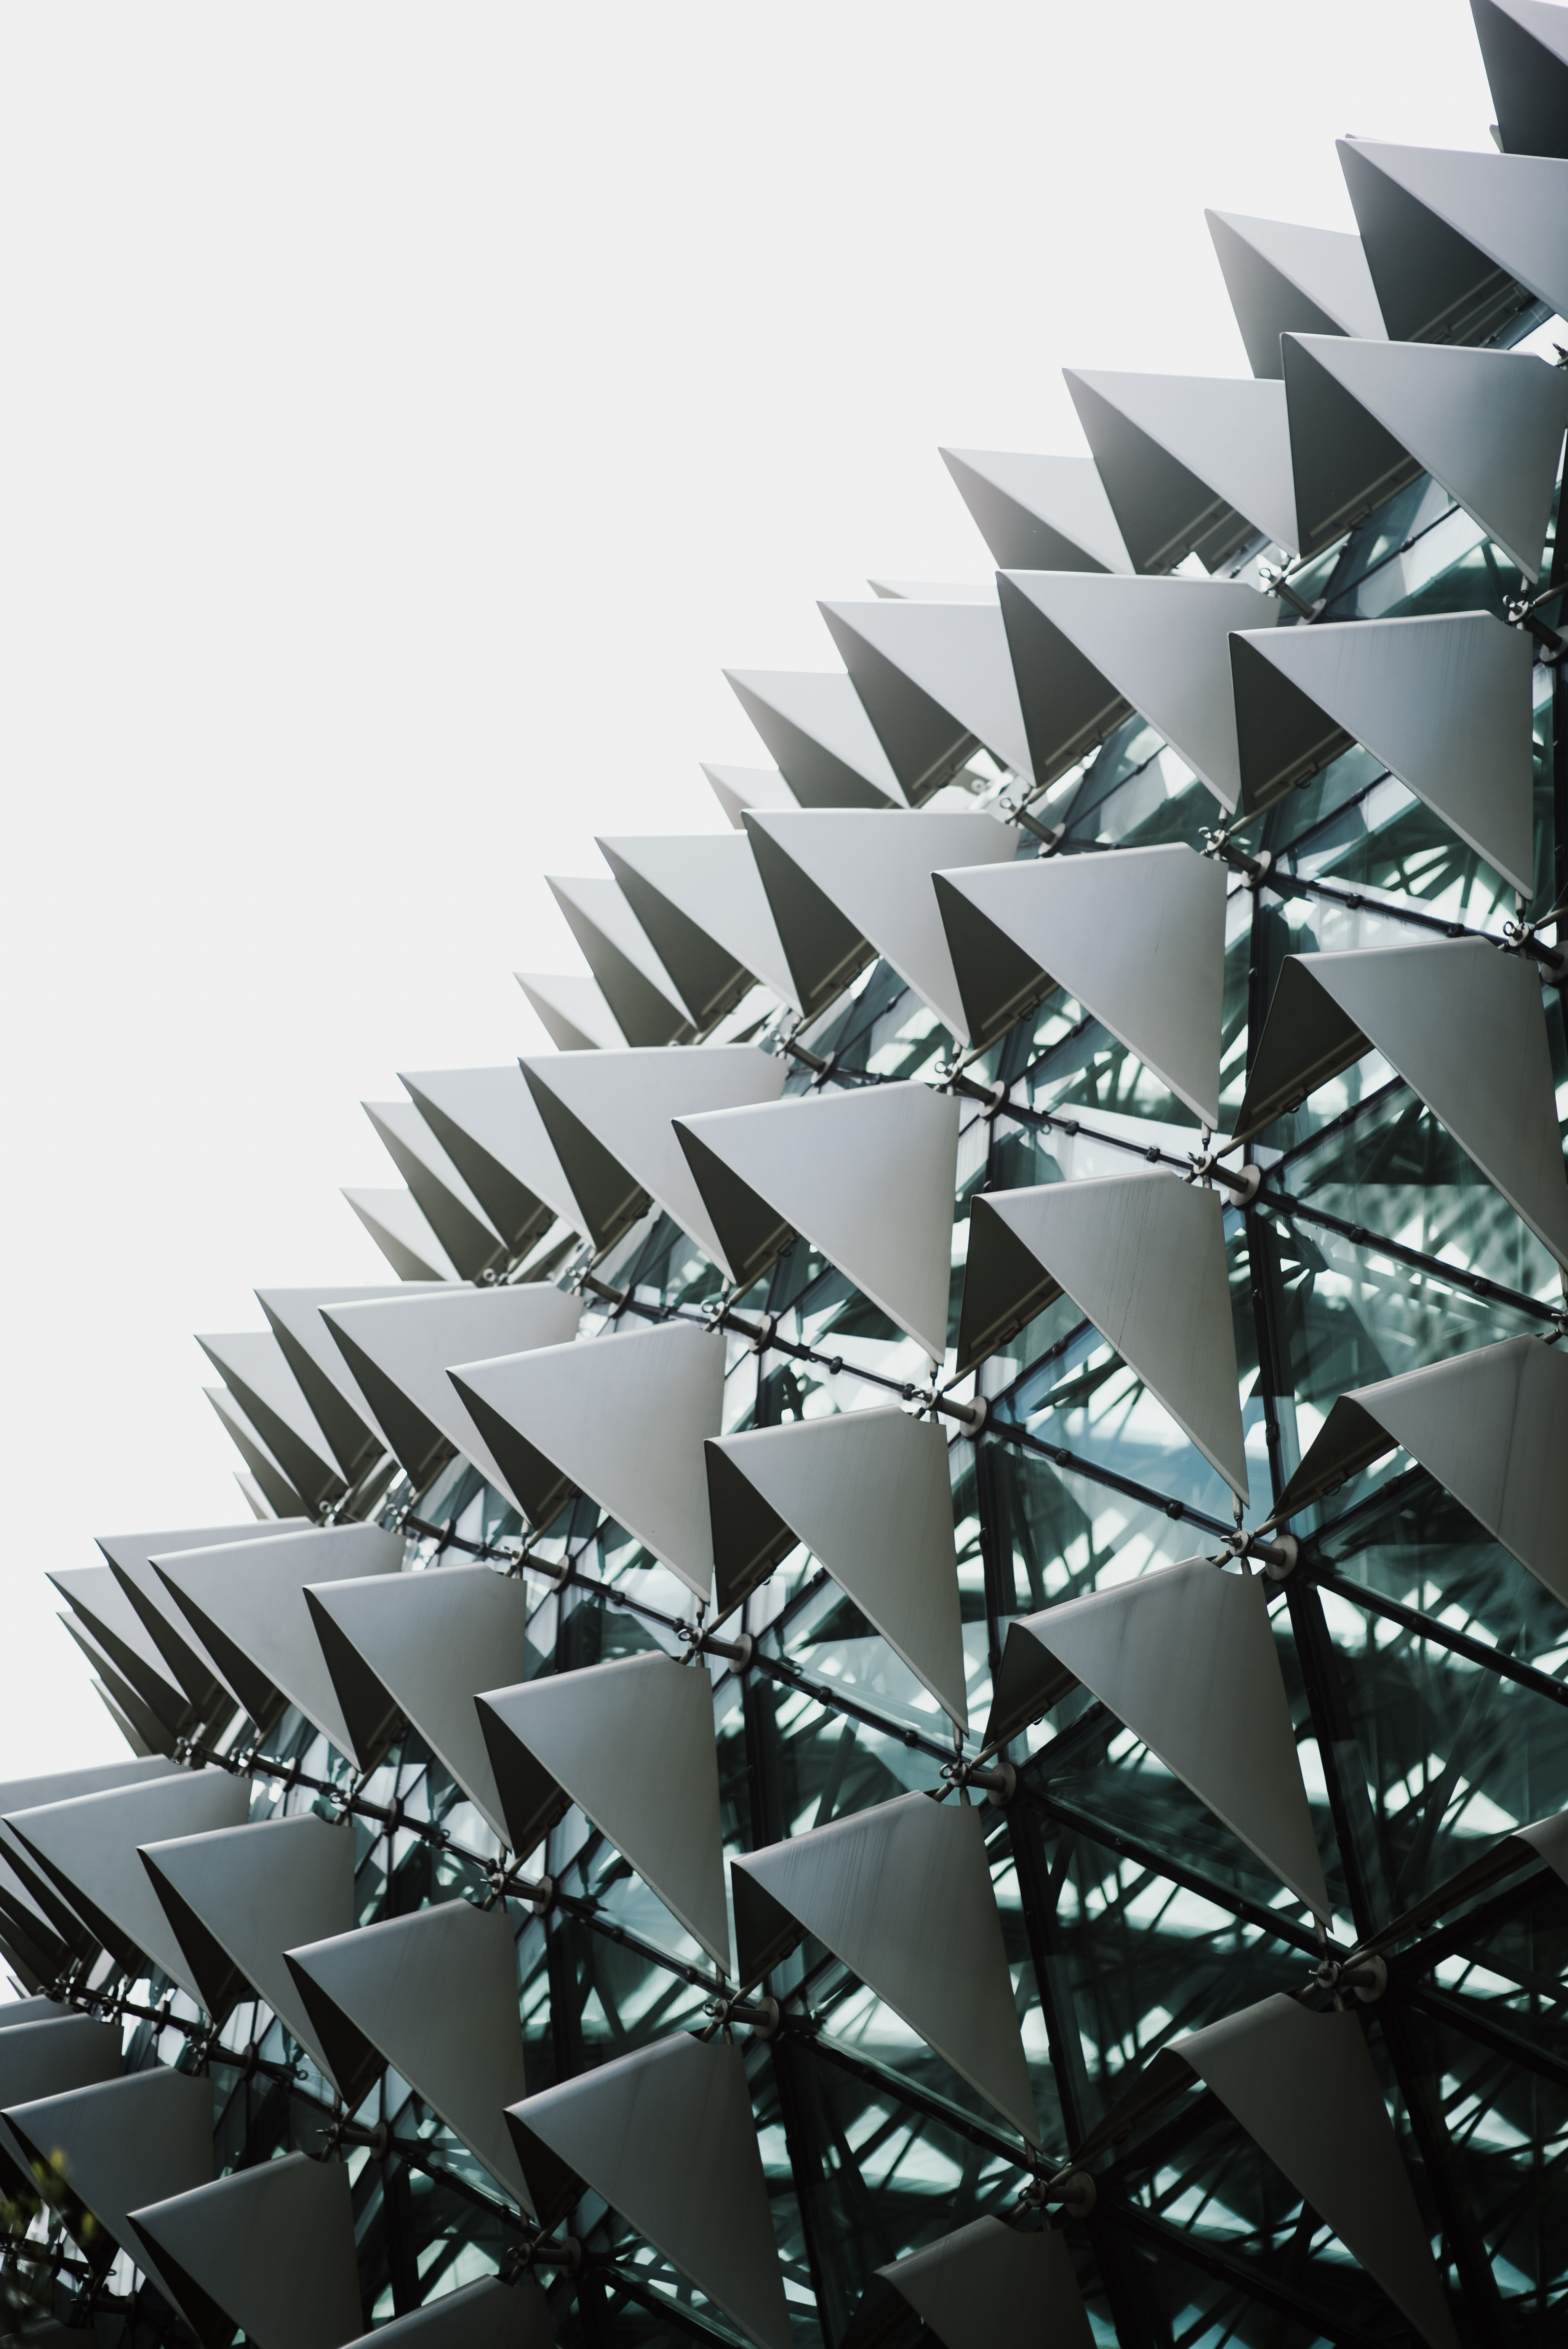 architectural photography of building with glass panels